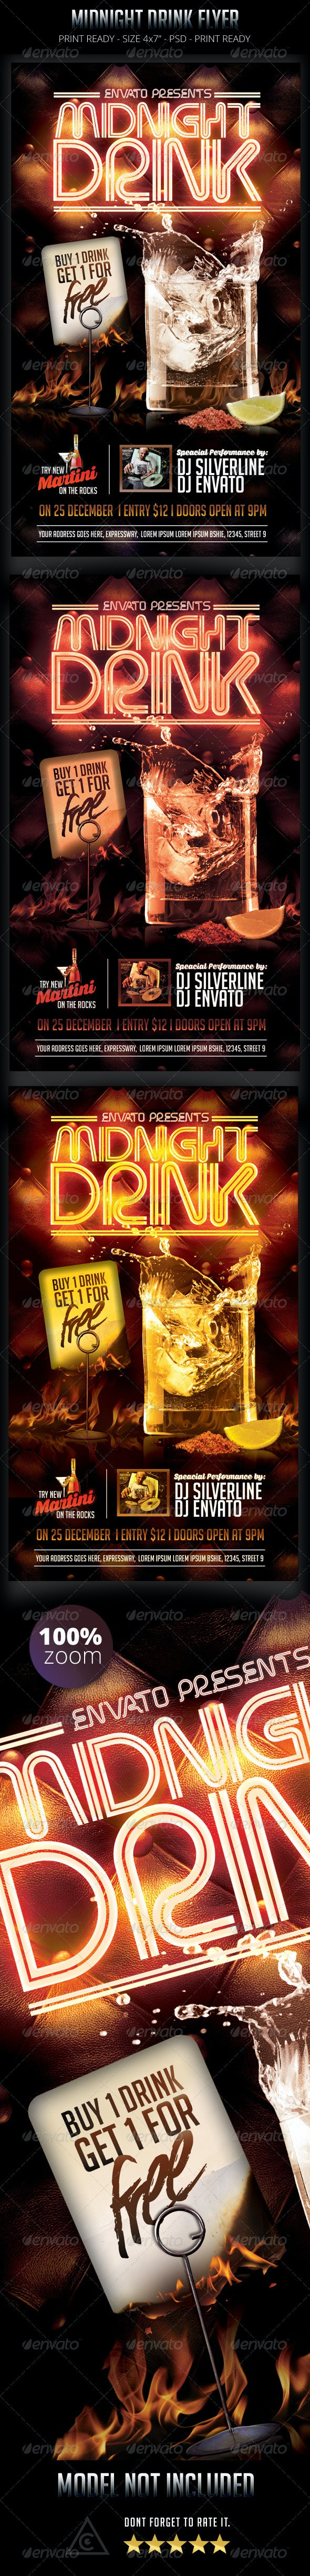 Midnight Drink Flyer - Clubs & Parties Events